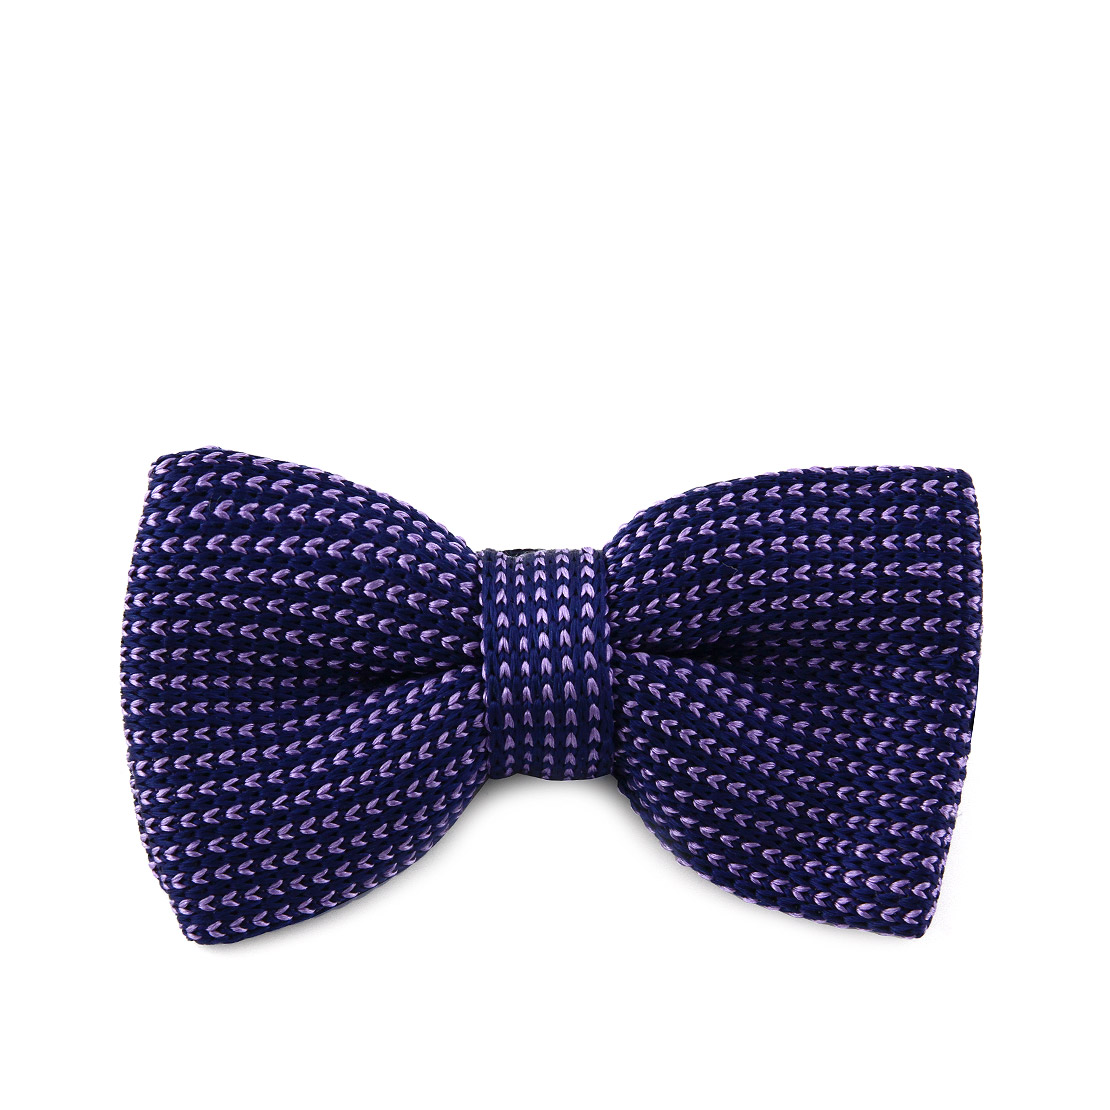 10engines: from the inbox -steve & co. knitted bow ties